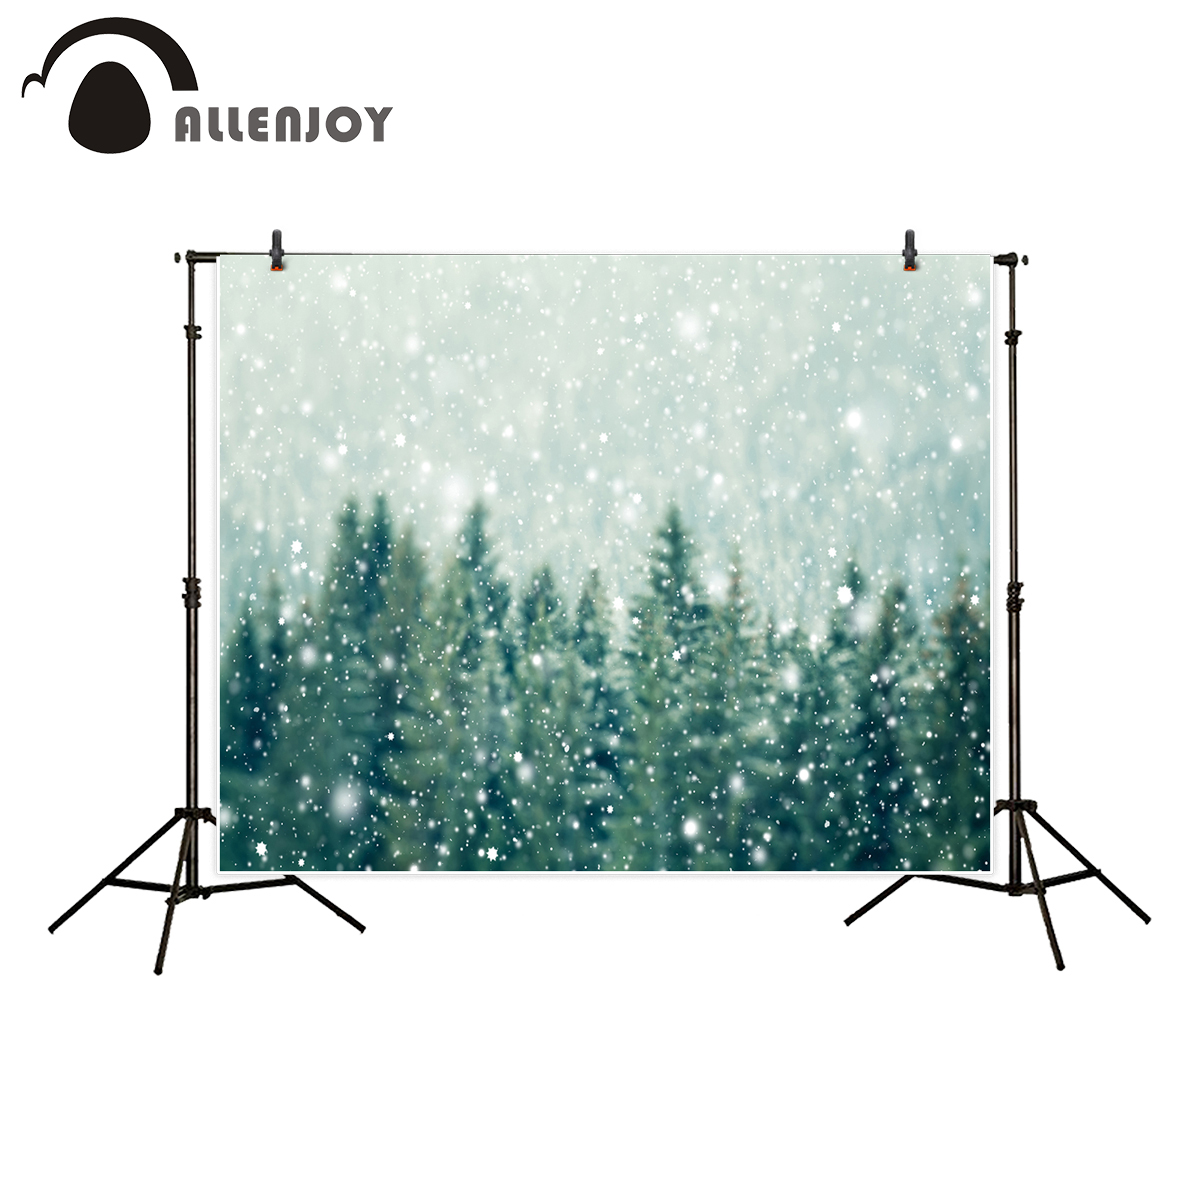 Allenjoy photography background Winter snowy pine forest Christmas backdrop for Photo studio new arrival camera fotografica цена 2017